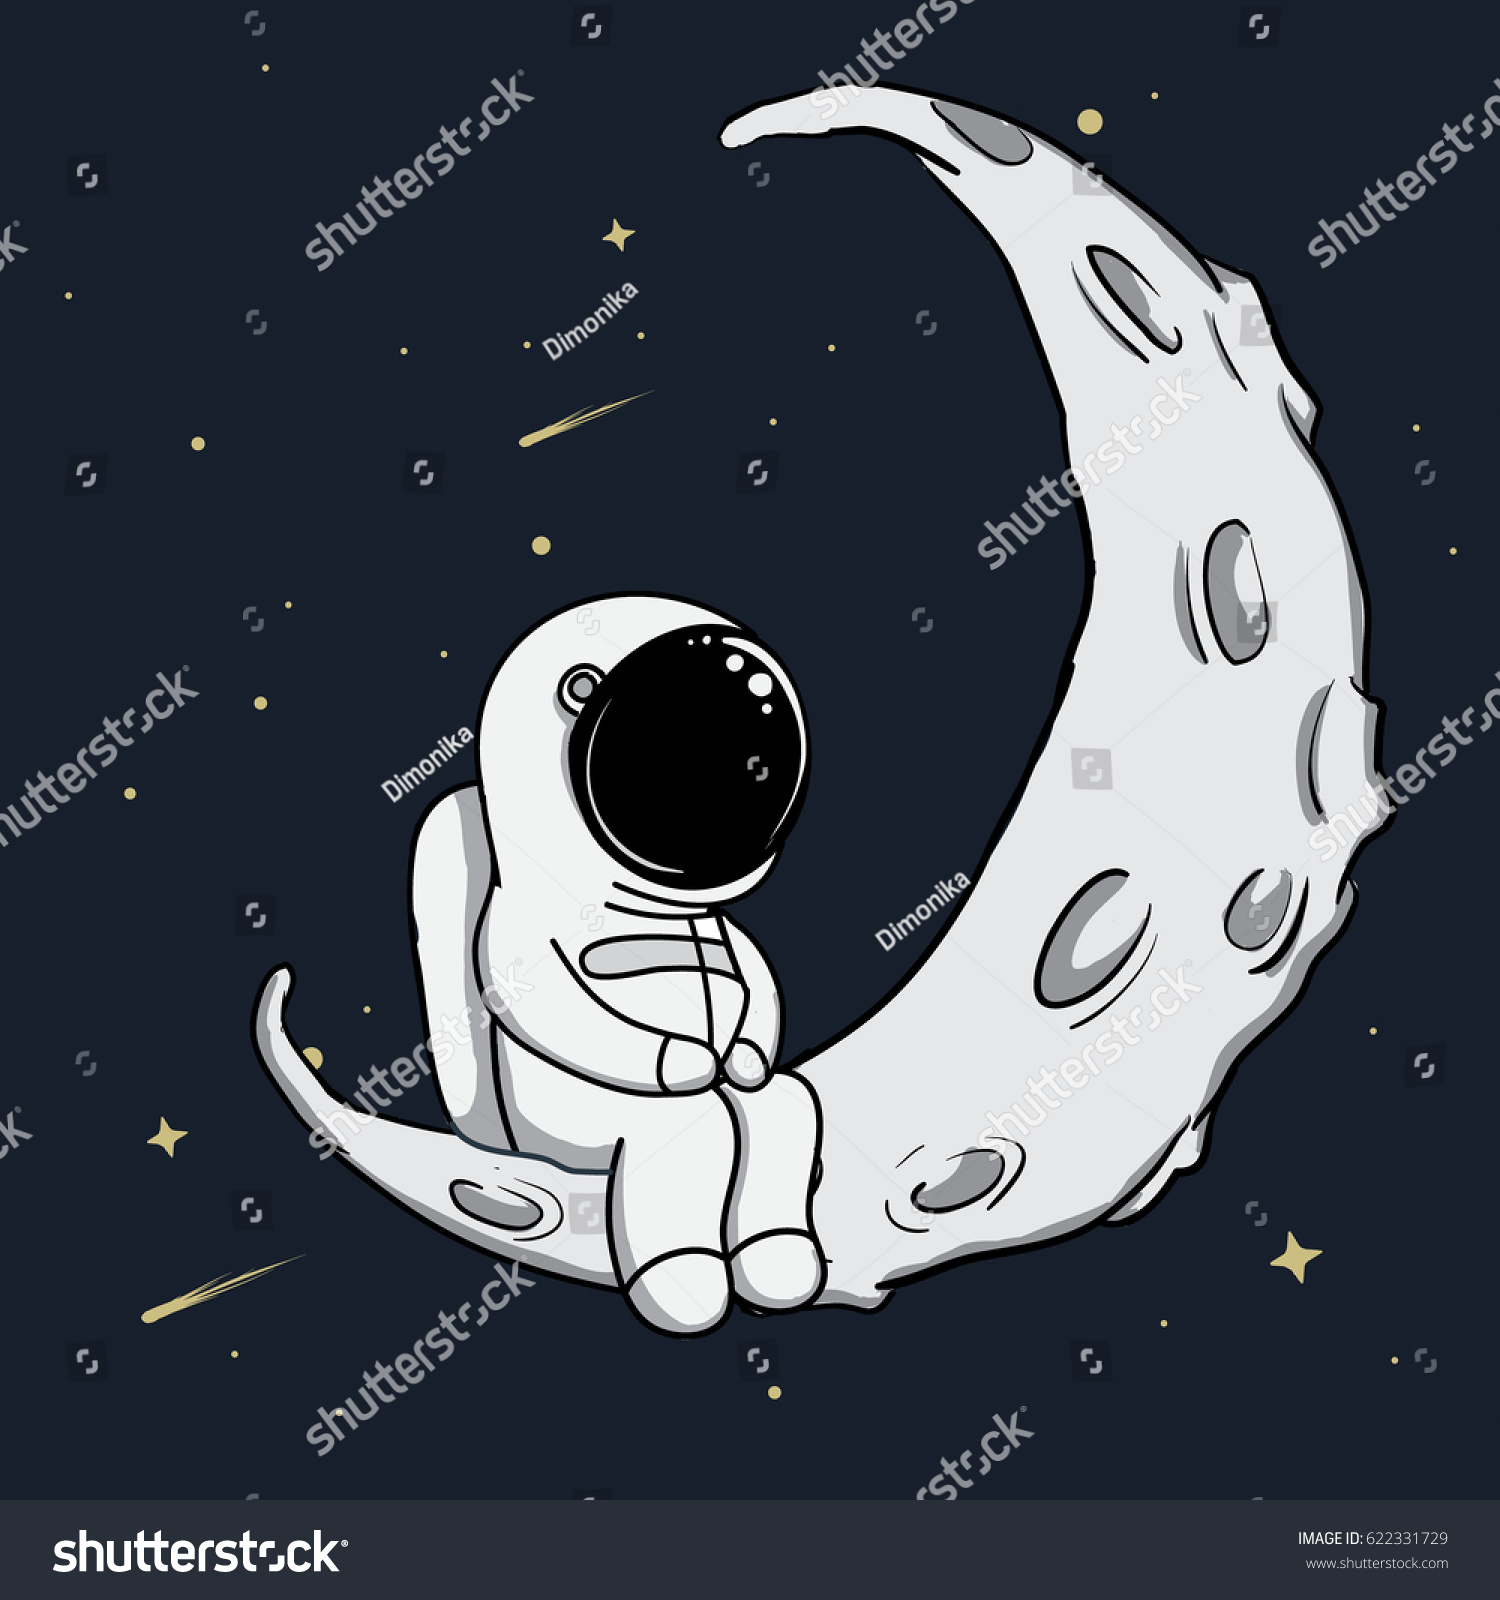 Cute Astronaut Sits On Crescent Moonchildish Stock Vector